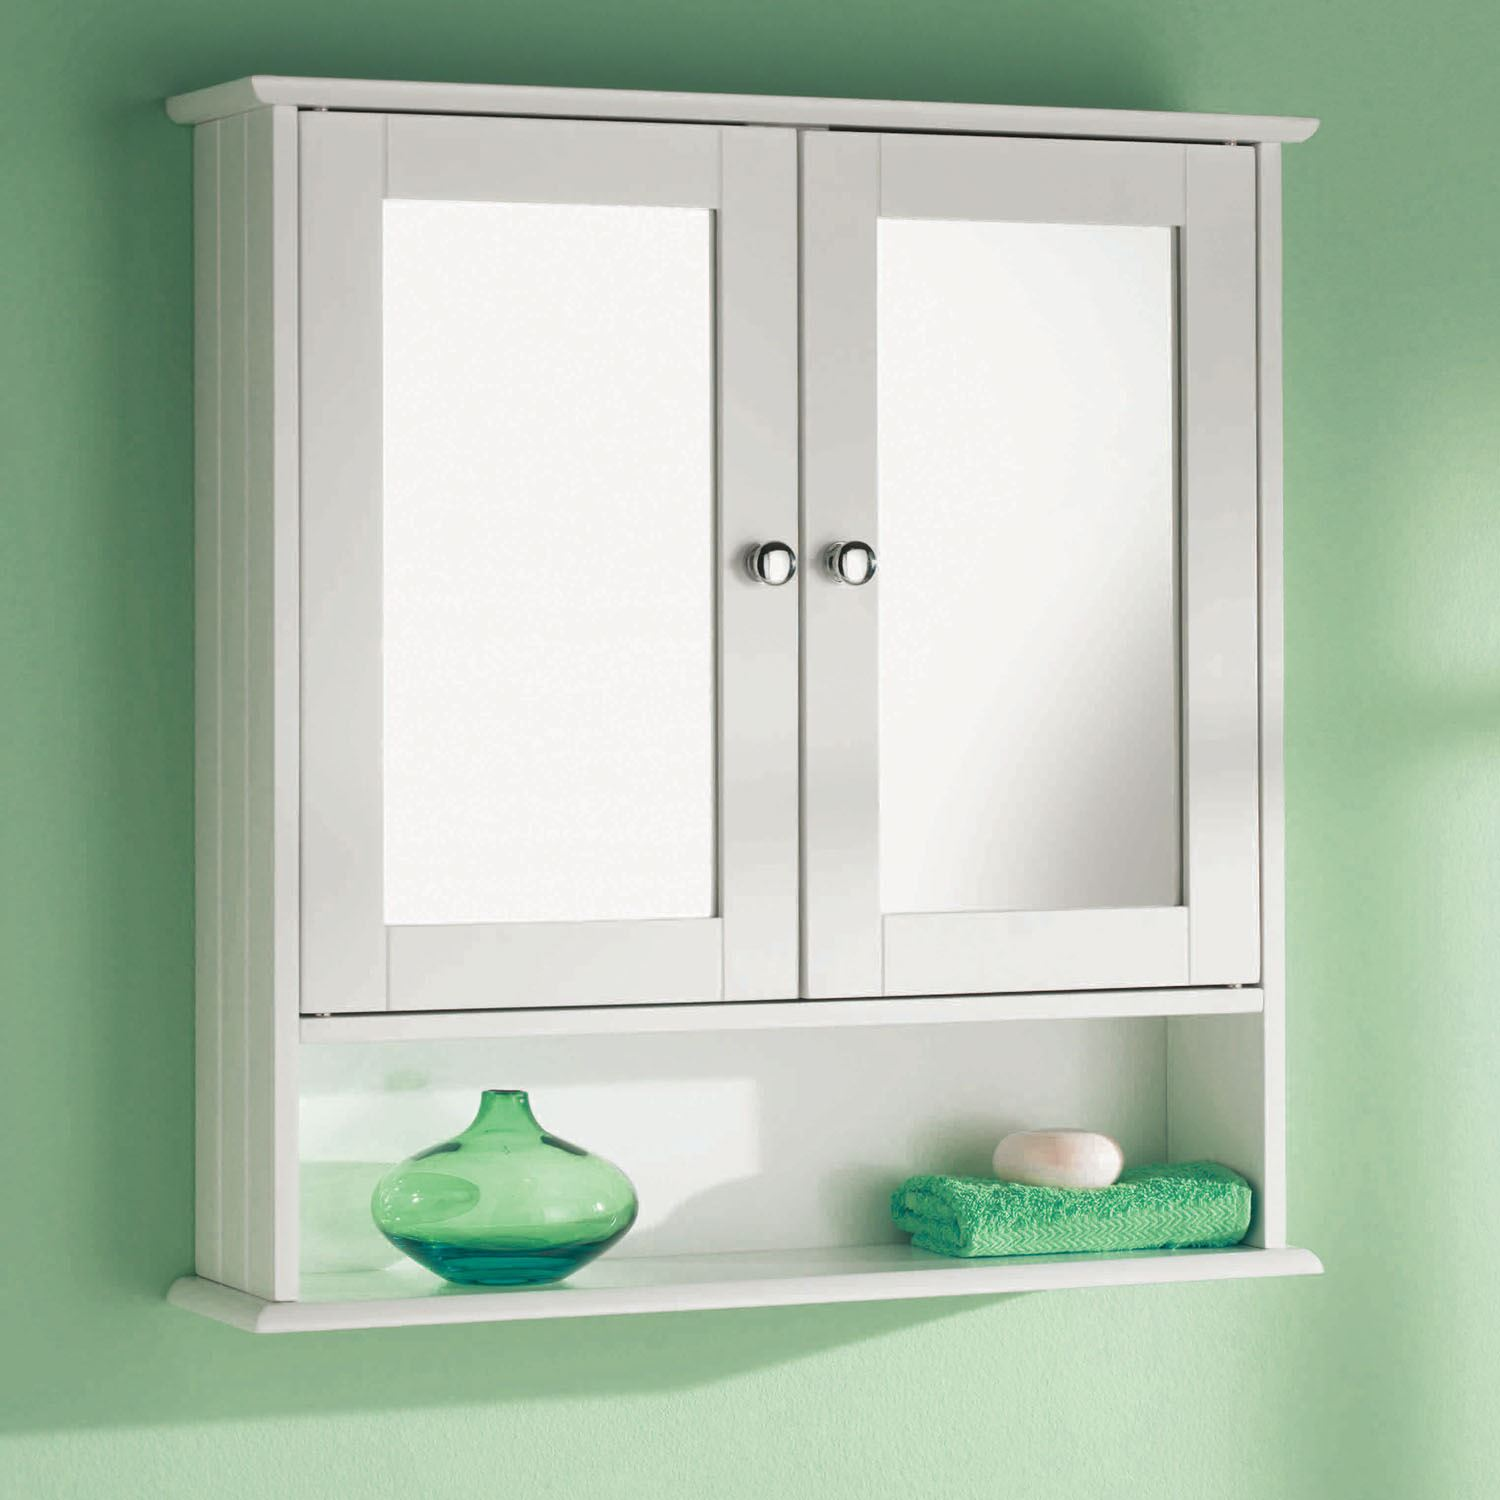 Wall Mounted Double Mirror Door Bathroom Cabinet White Wooden ...